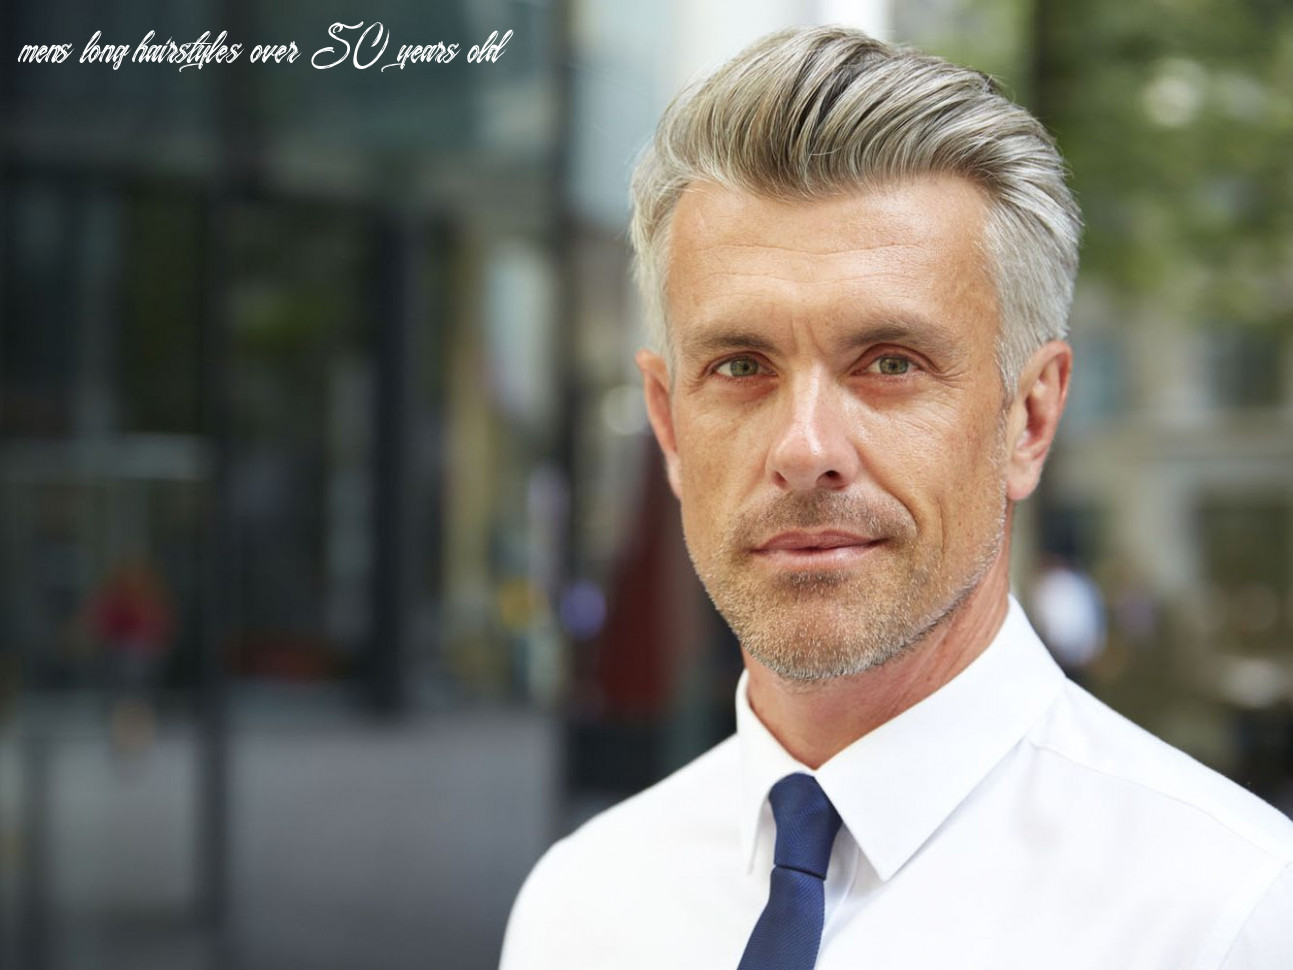 Cool haircuts for men over 10 mens long hairstyles over 50 years old